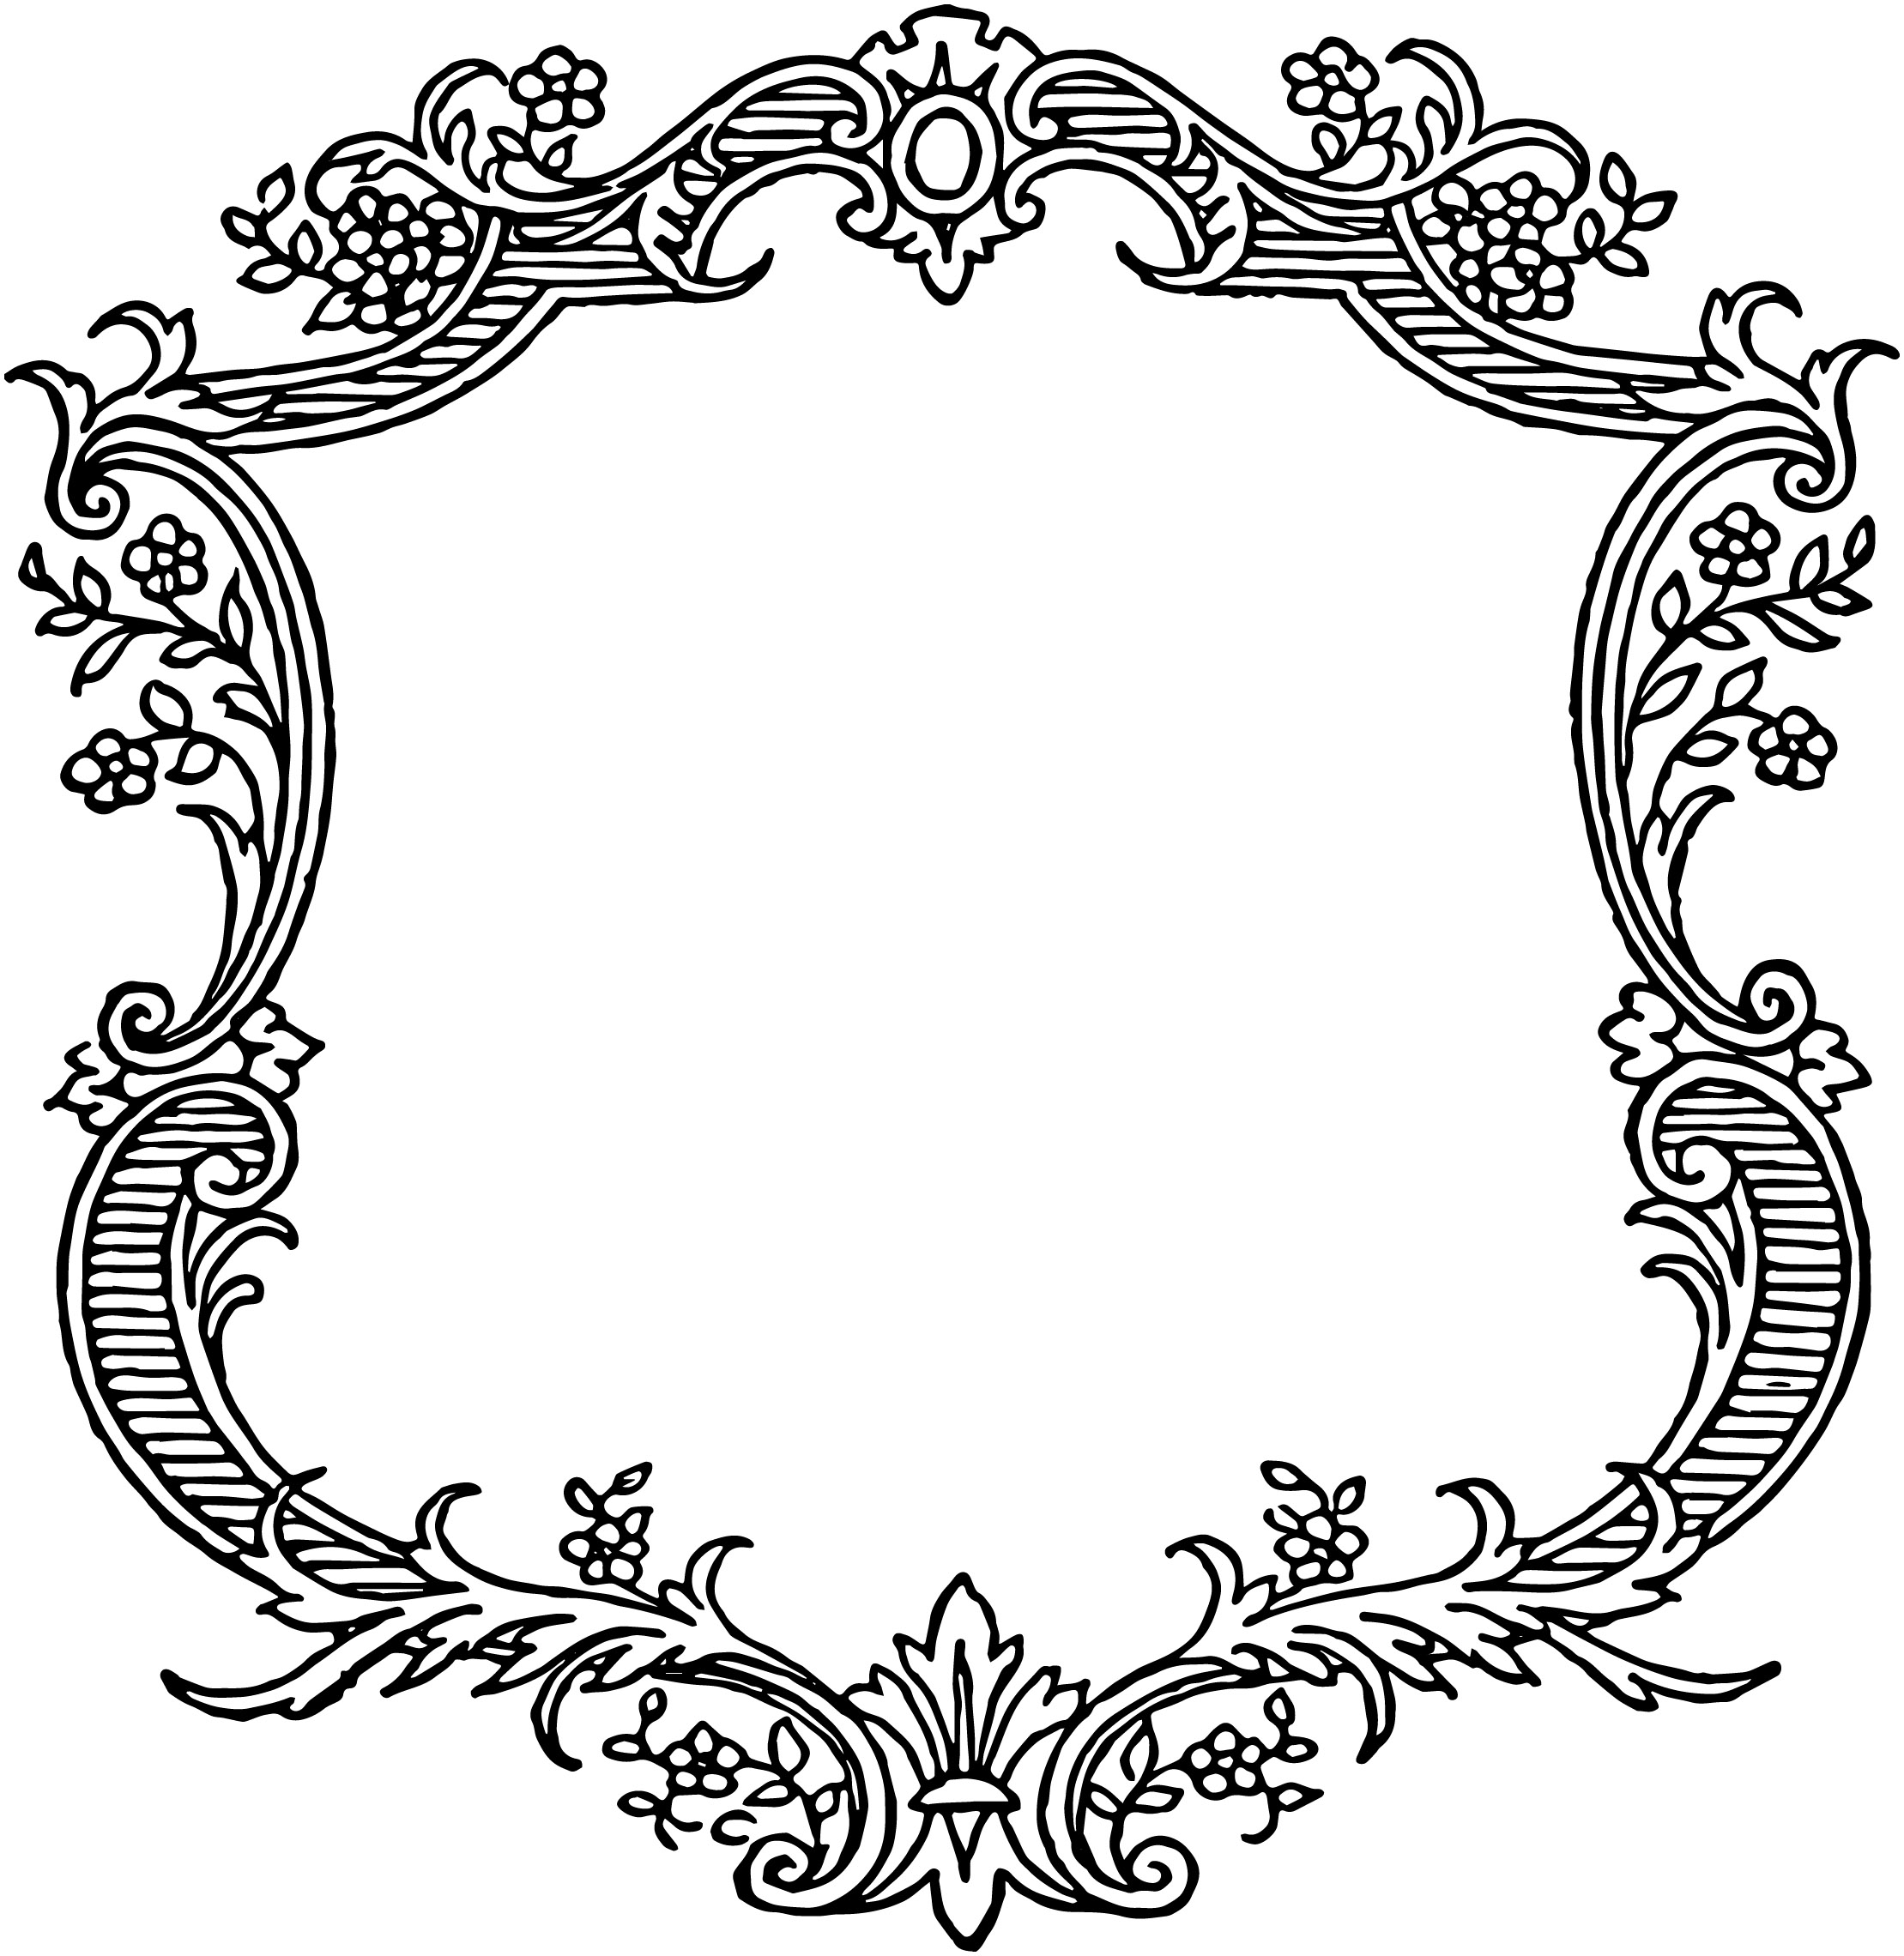 Flower Frame Line Drawing : Free vintage floral scroll border frame oh so nifty